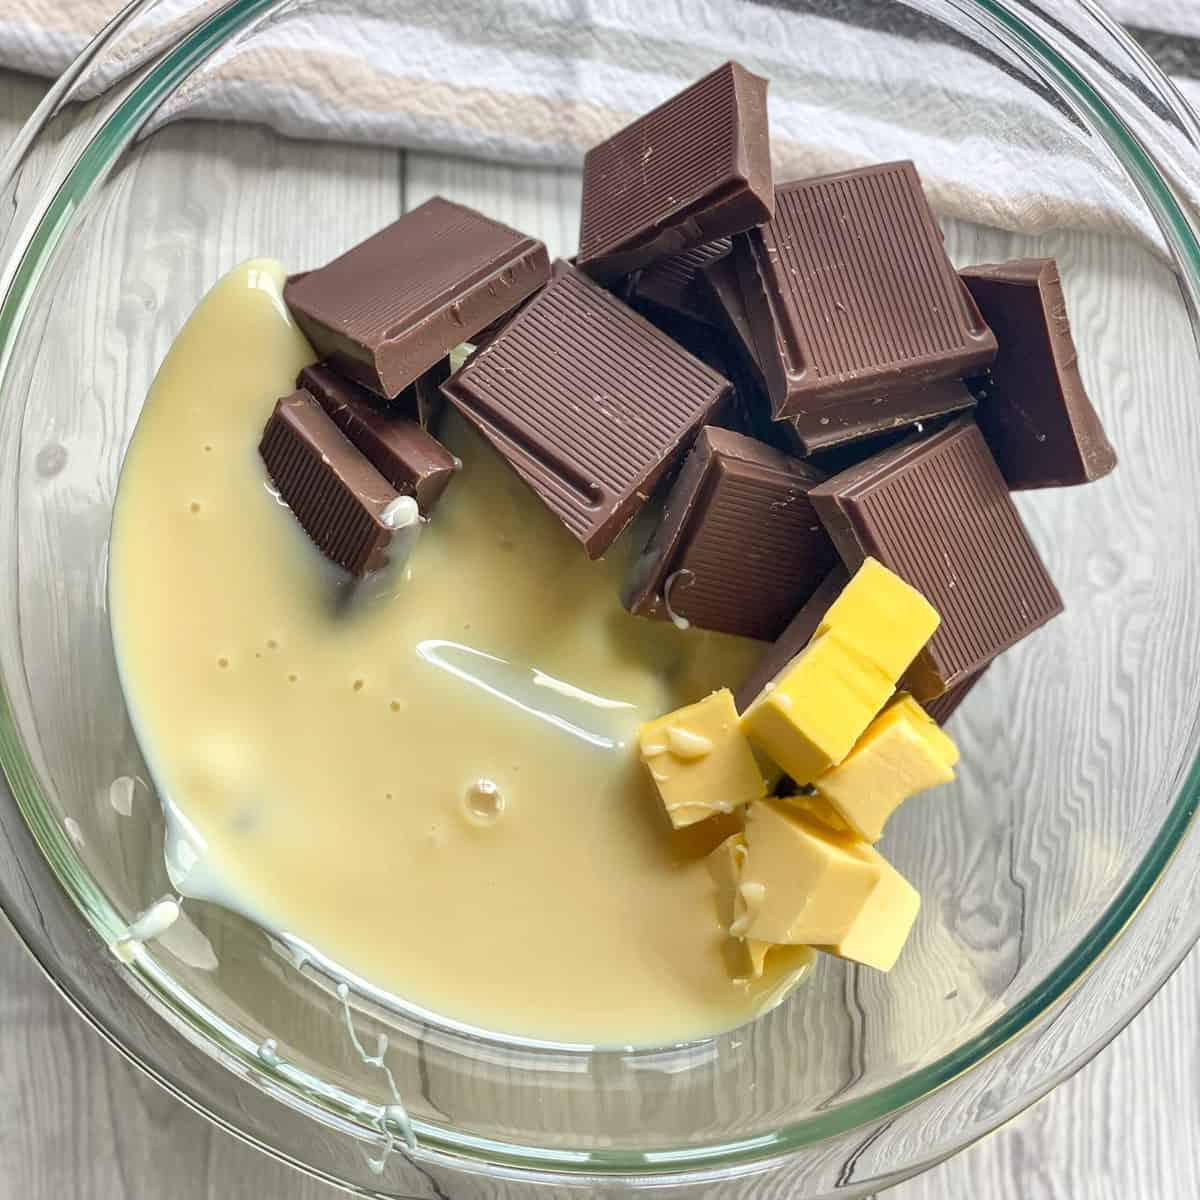 Ingredients to make 5 minute fudge in a bowl